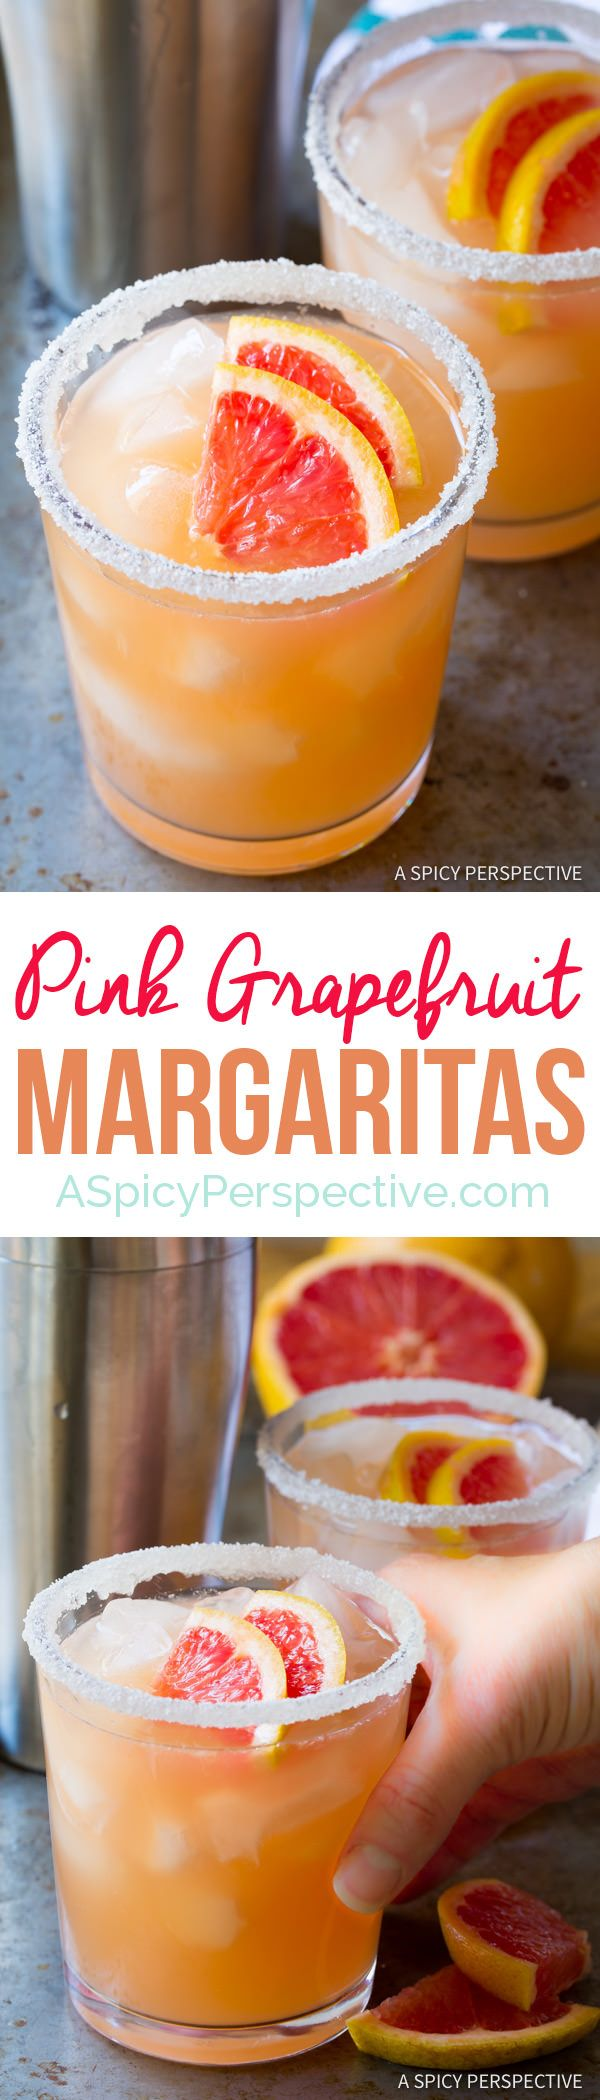 Perky Pink Grapefruit Margarita Recipe | ASpicyPerspective.com